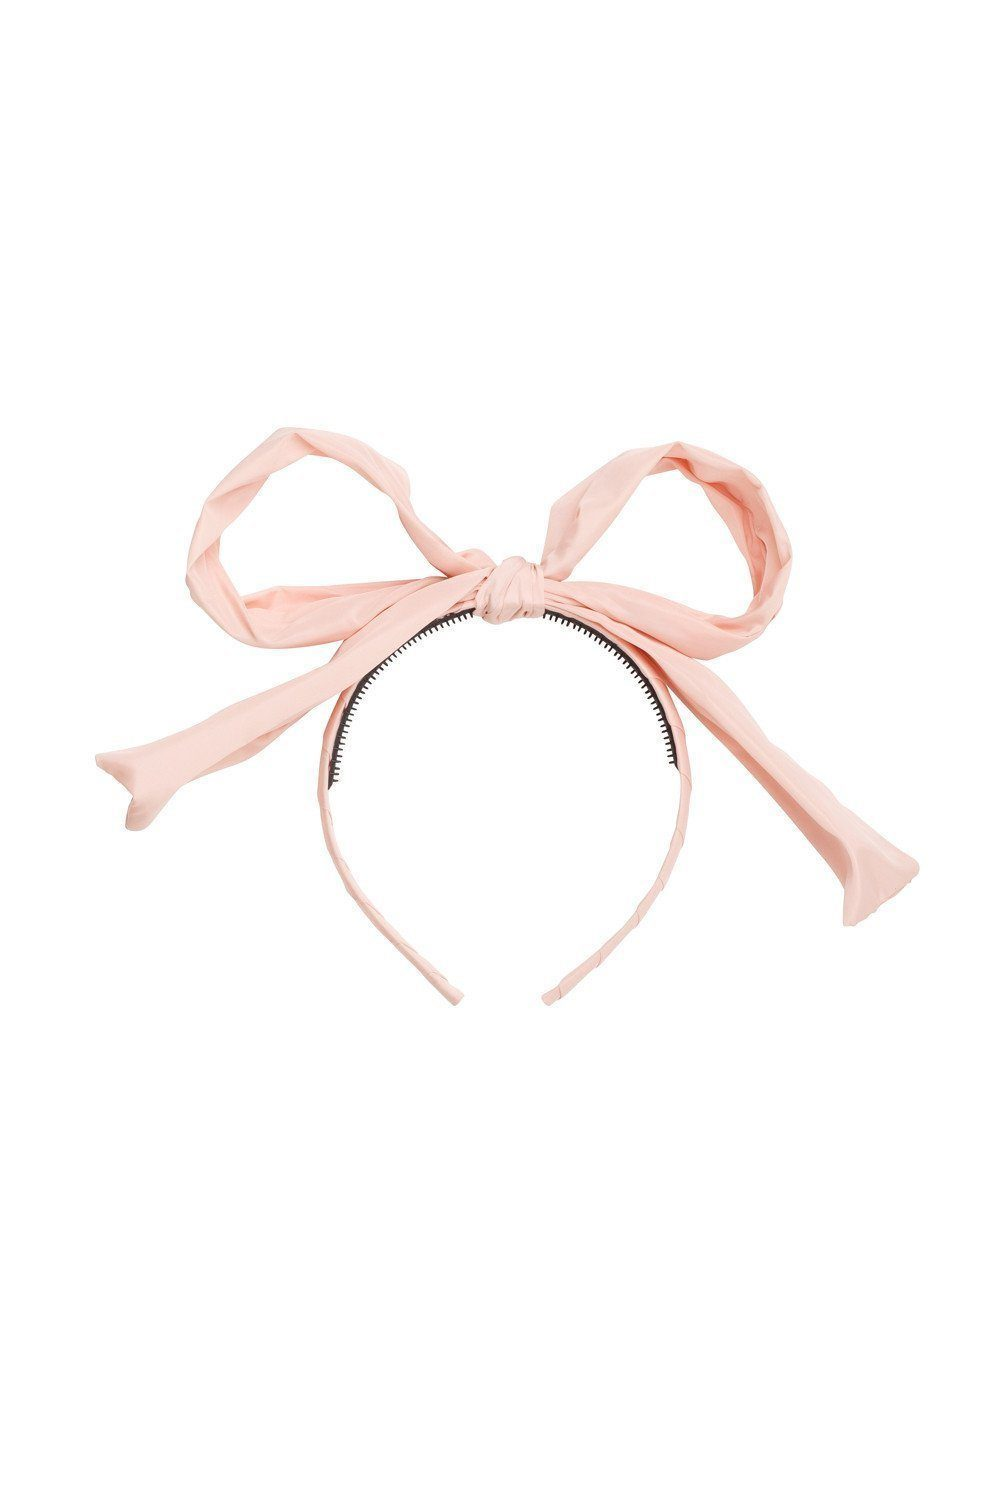 Party Bow Taffeta - Blush - PROJECT 6, modest fashion